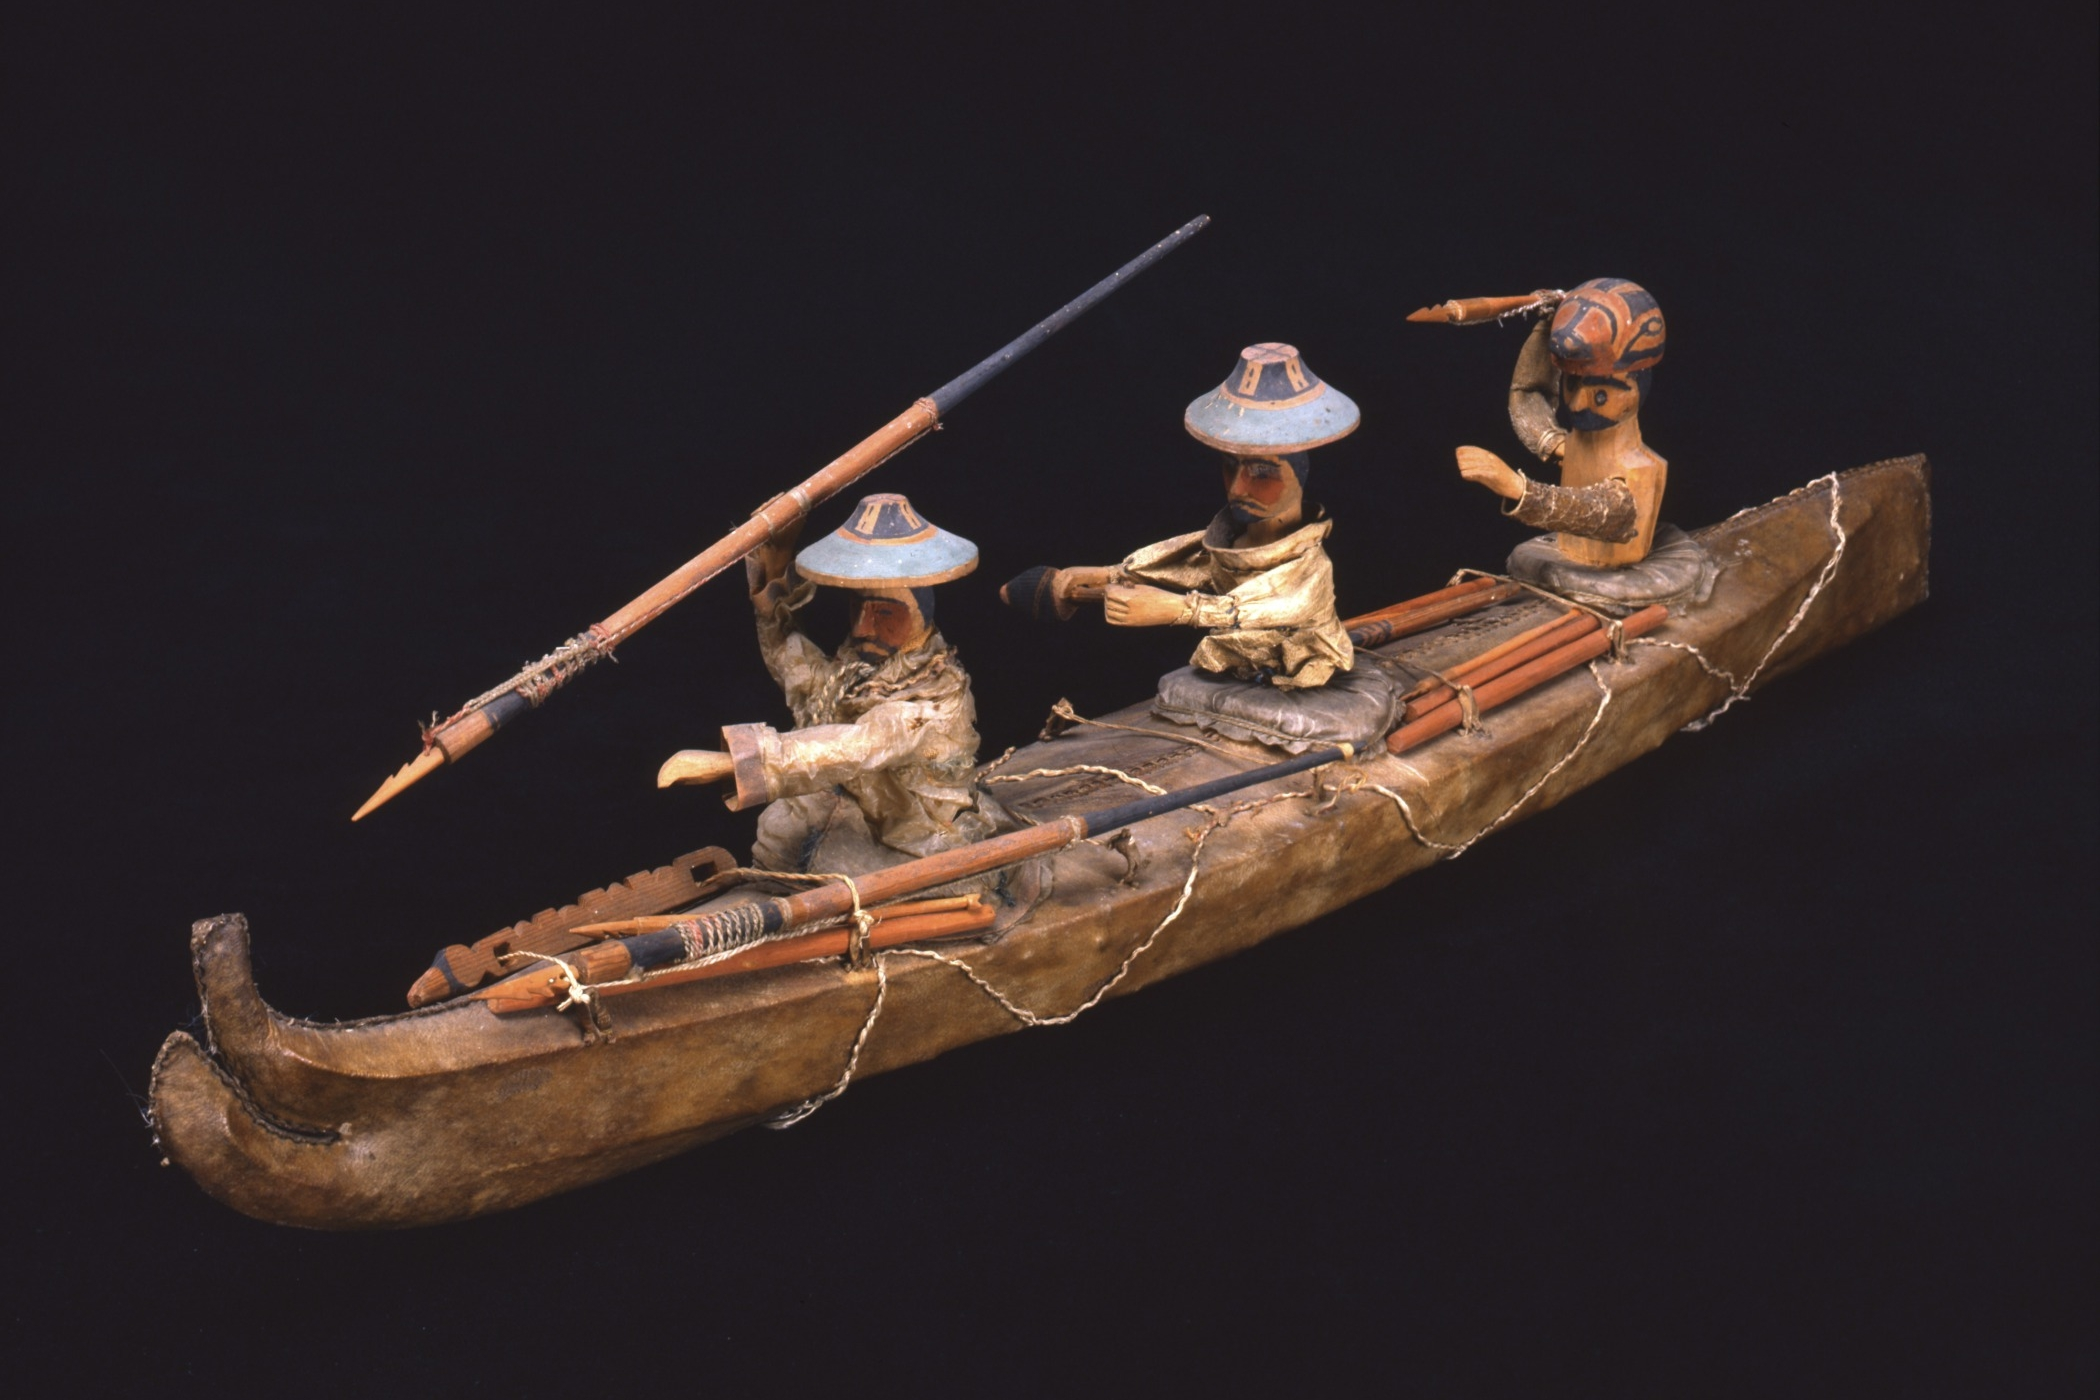 Sugpiaq (Alutiiq), three-hatch kayak model, mid-19th century. Skin kayak cover, wood, gut (intestines), sinew, and pigment, 55 1/2 × 11 5/8 × 7 13/16 in. Hood Museum of Art, Dartmouth College: Gift of Captain Worthen Hall and Polly D. Lovewell Hall; 13.1.591.